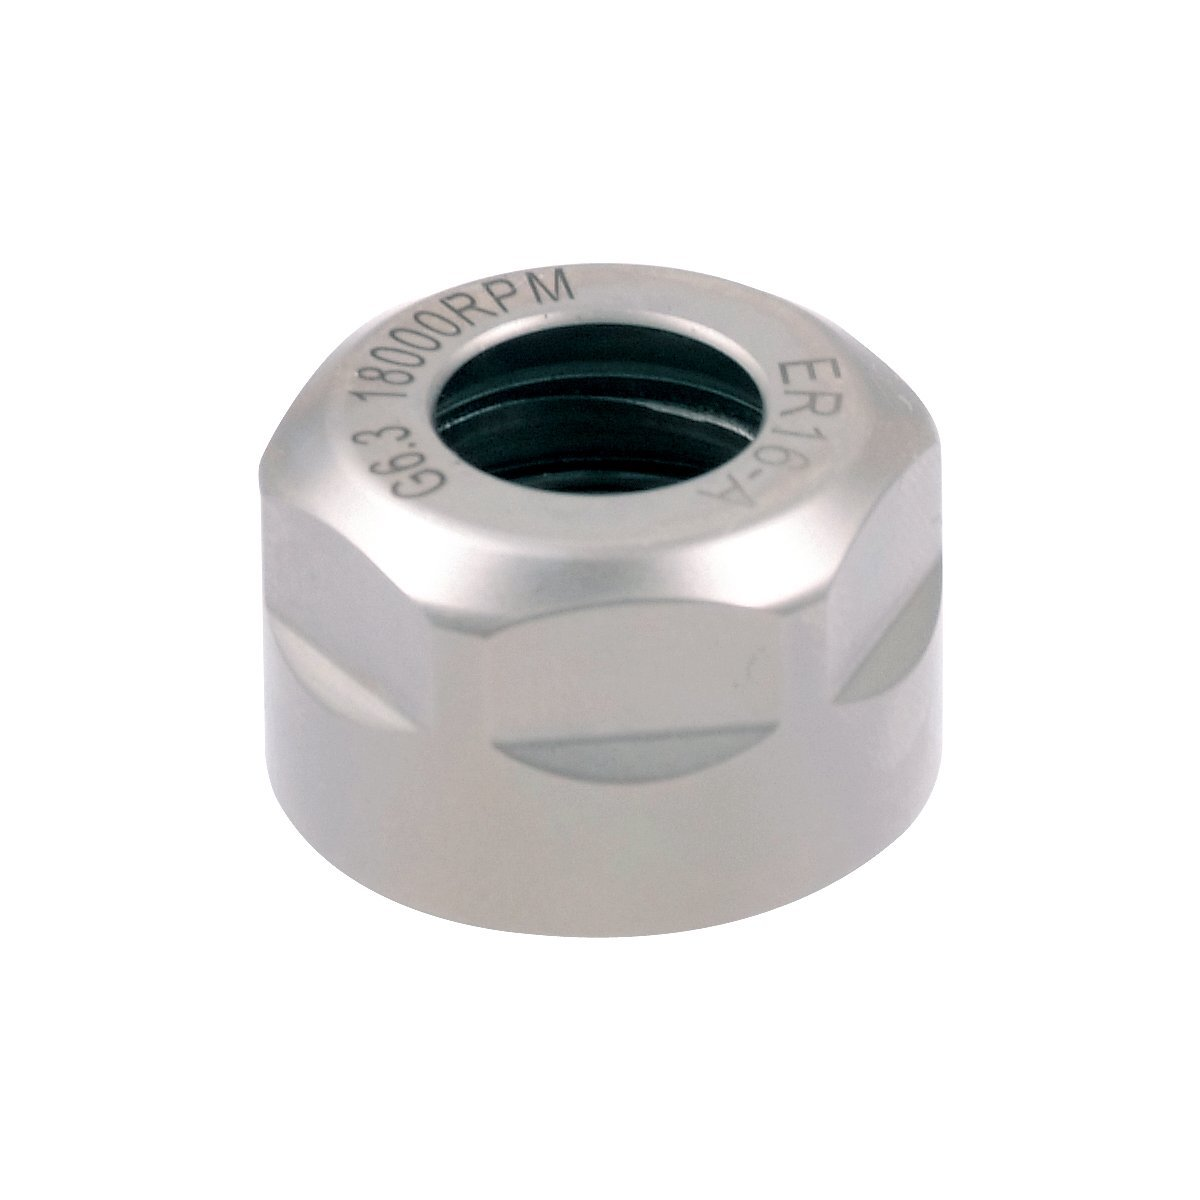 Pro Series by HHIP 3900-0686 Collet Chuck Nut, A-Type Er16, 18000 rpm, 28 mm